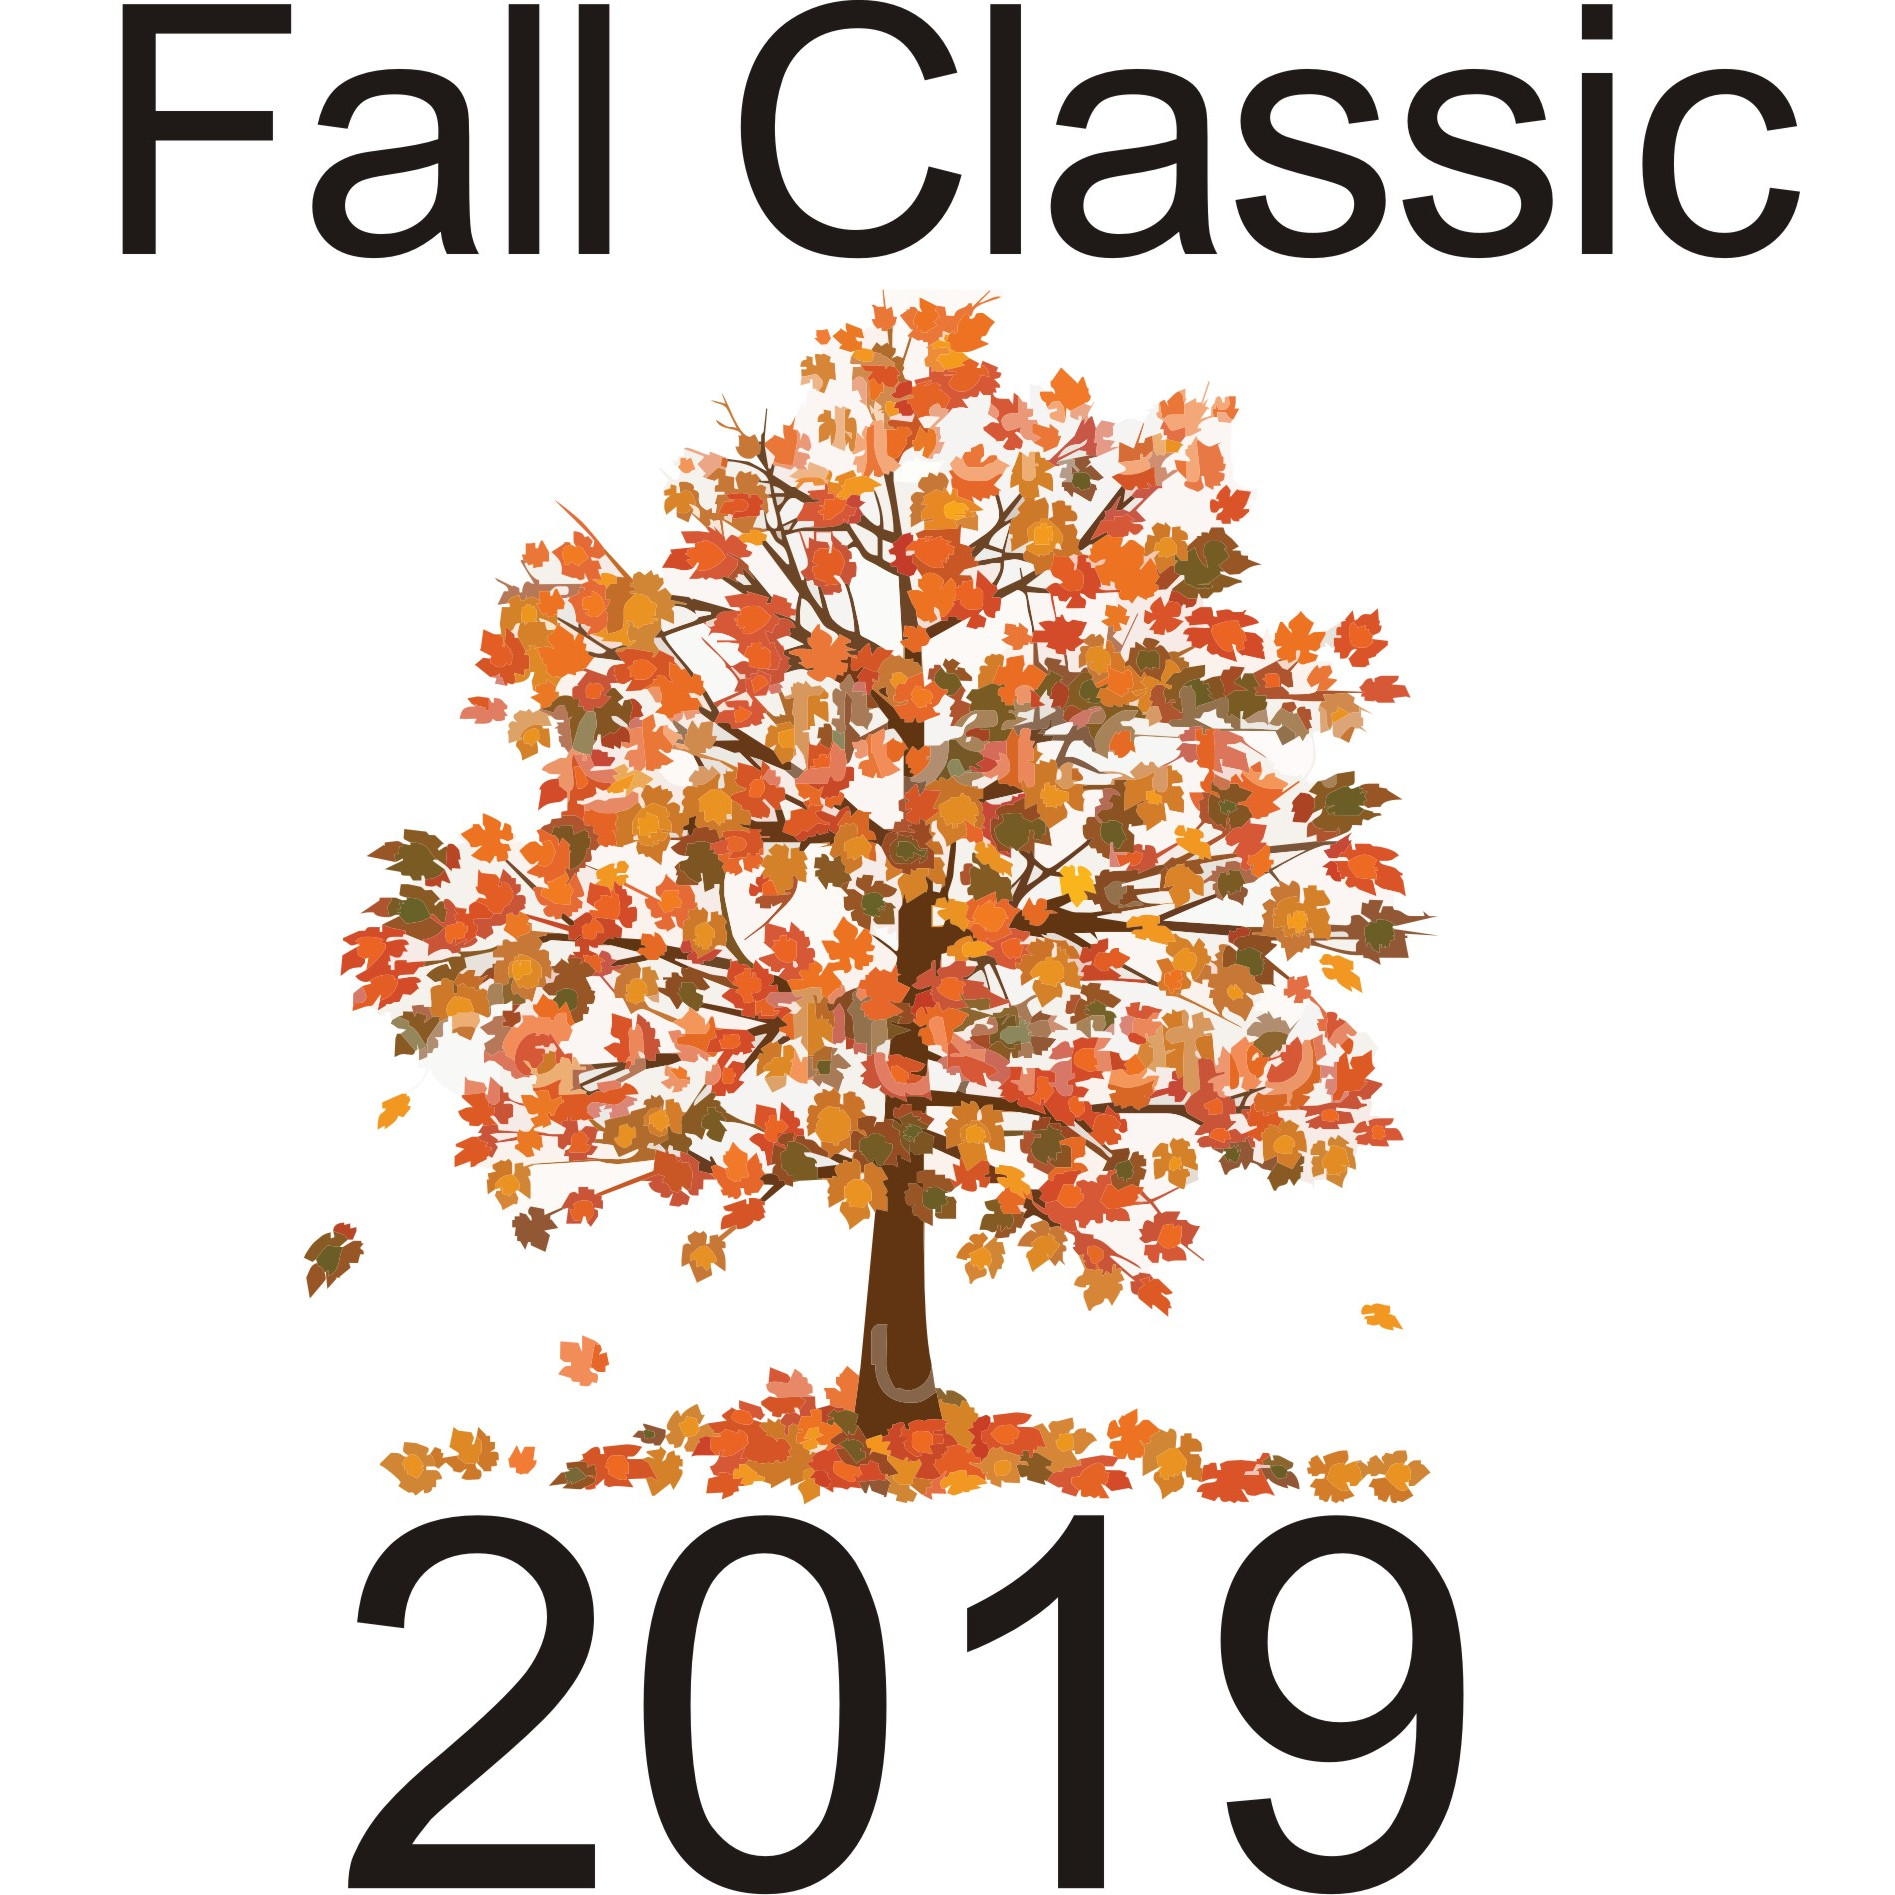 2019 Fall Classic 2019 Race Roster Registration Marketing Fundraising